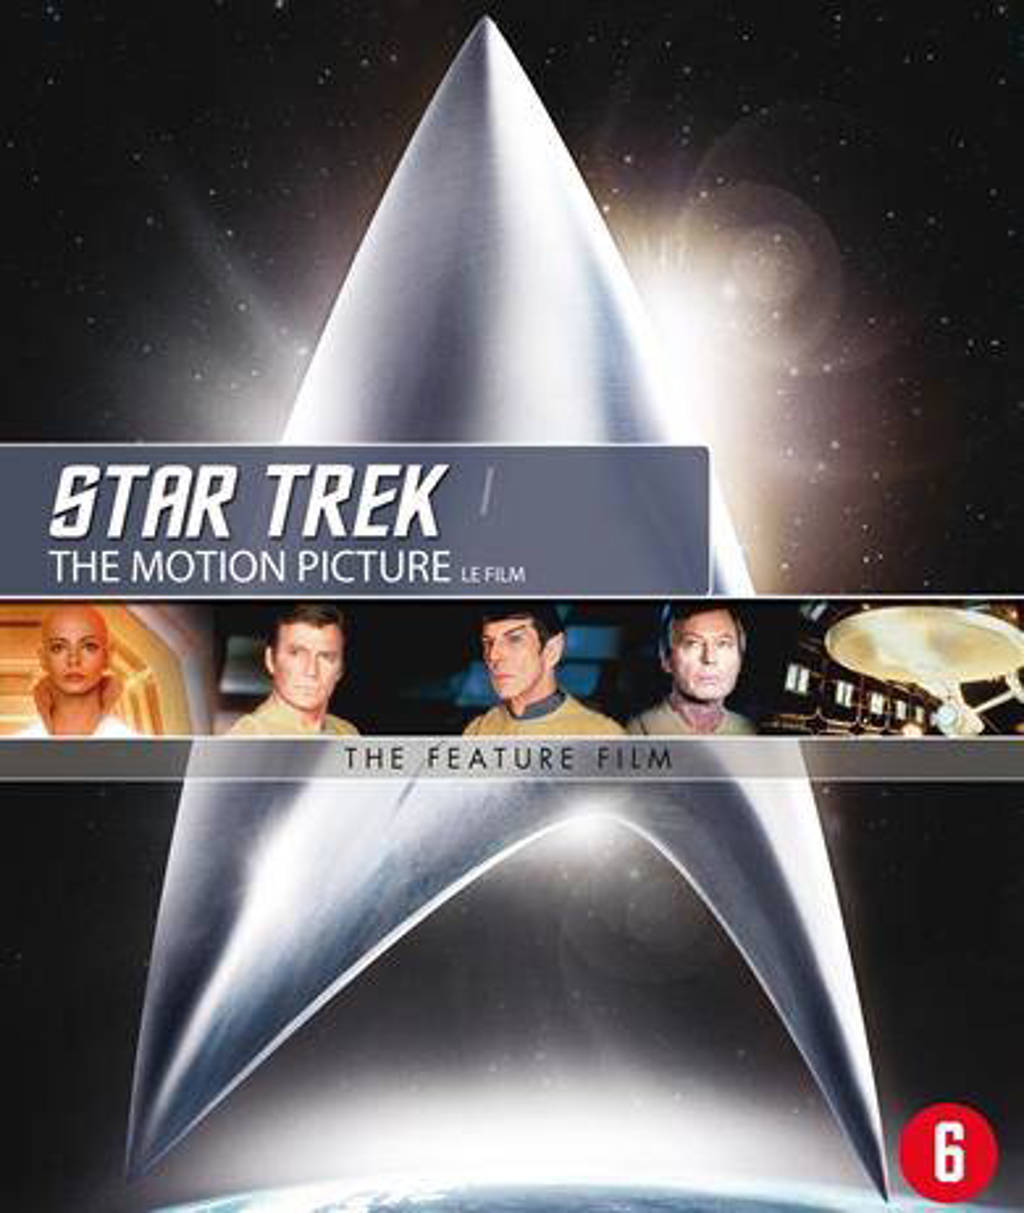 Star trek 1 - Motion picture (Blu-ray)